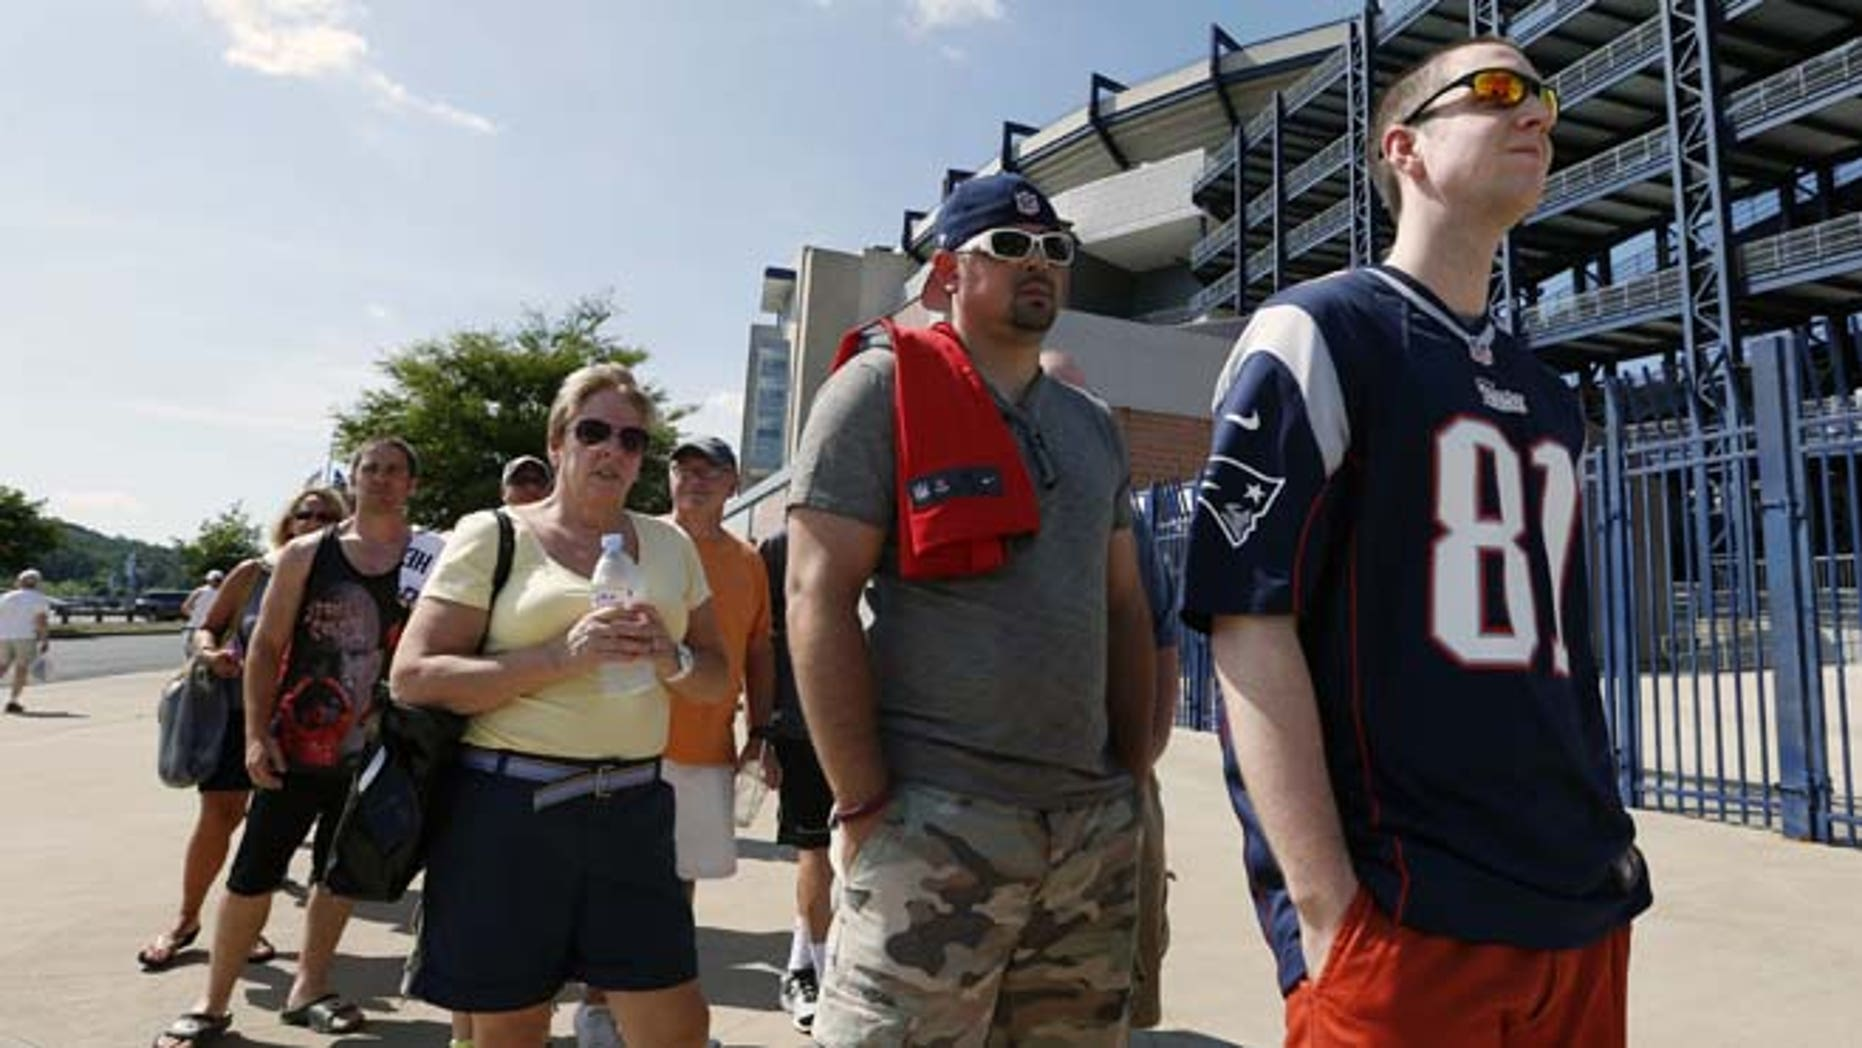 July 6, 2013: Mike Davies, right, of Norfolk, Mass., wears his New England Patriots Aaron Hernandez football jersey one last time while waiting in an exchange line outside Gillette Stadium in Foxborough, Mass. Fans may trade an Aaron Hernandez jersey with his name on it they purchased for one of another player on the NFL team. The team released Hernandez after he was arrested for allegedly orchestrating the death of Odin Lloyd.